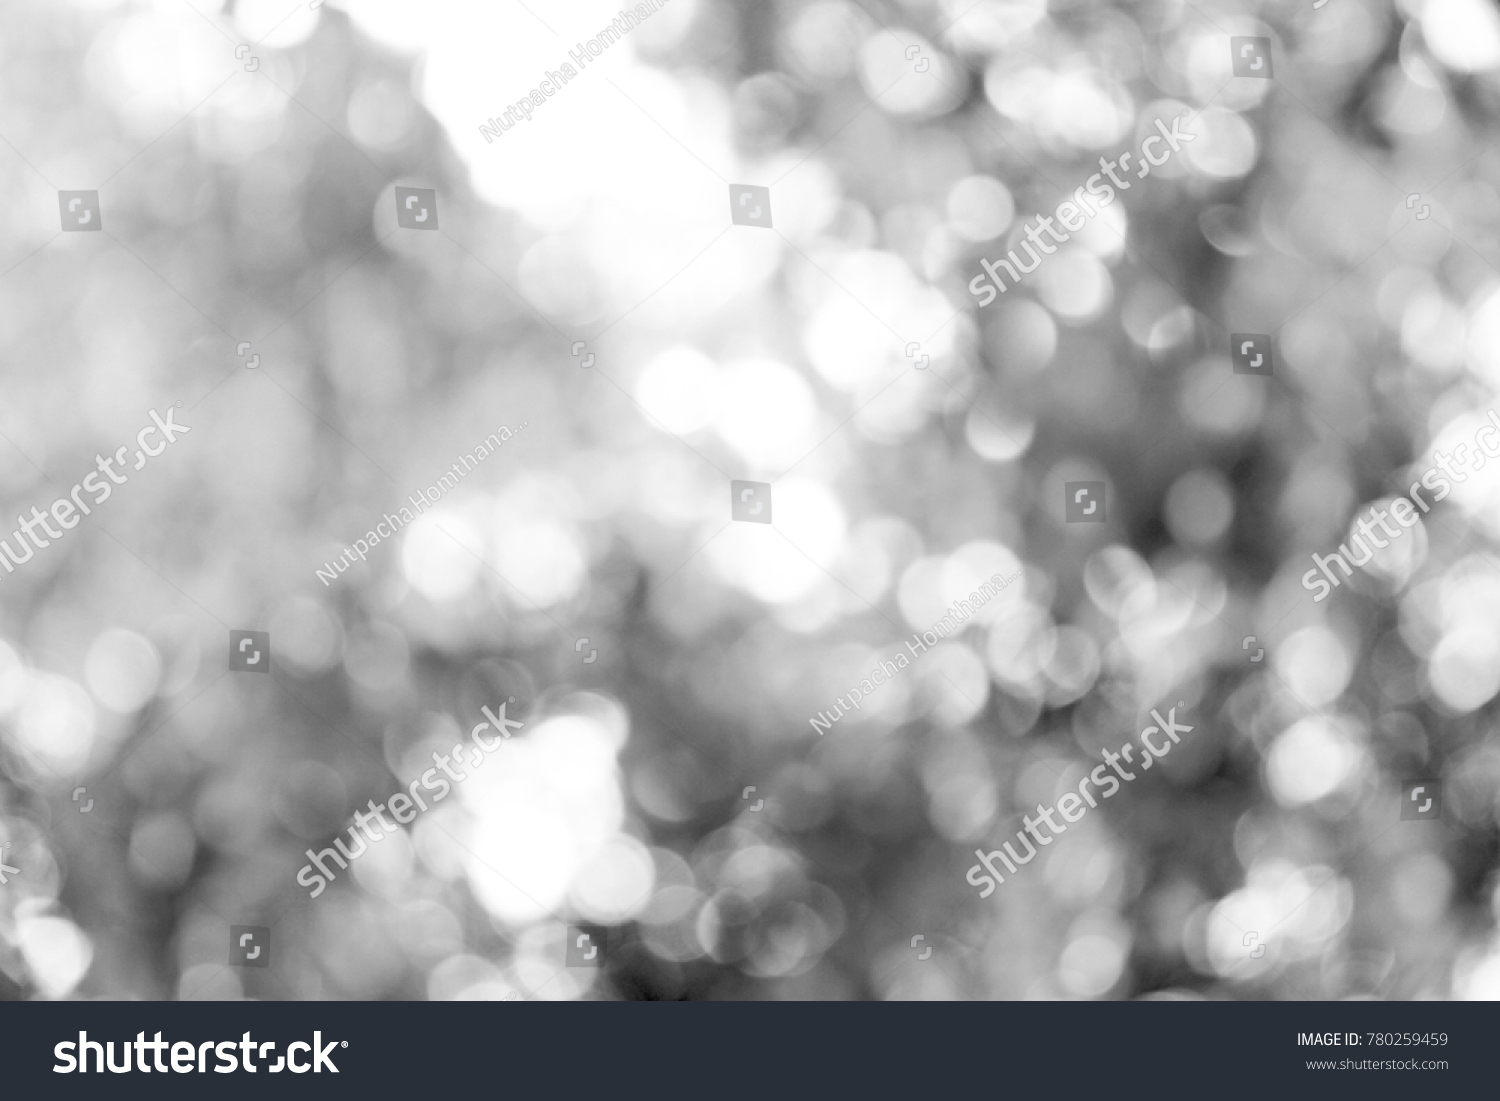 Black white Bokeh background. #780259459